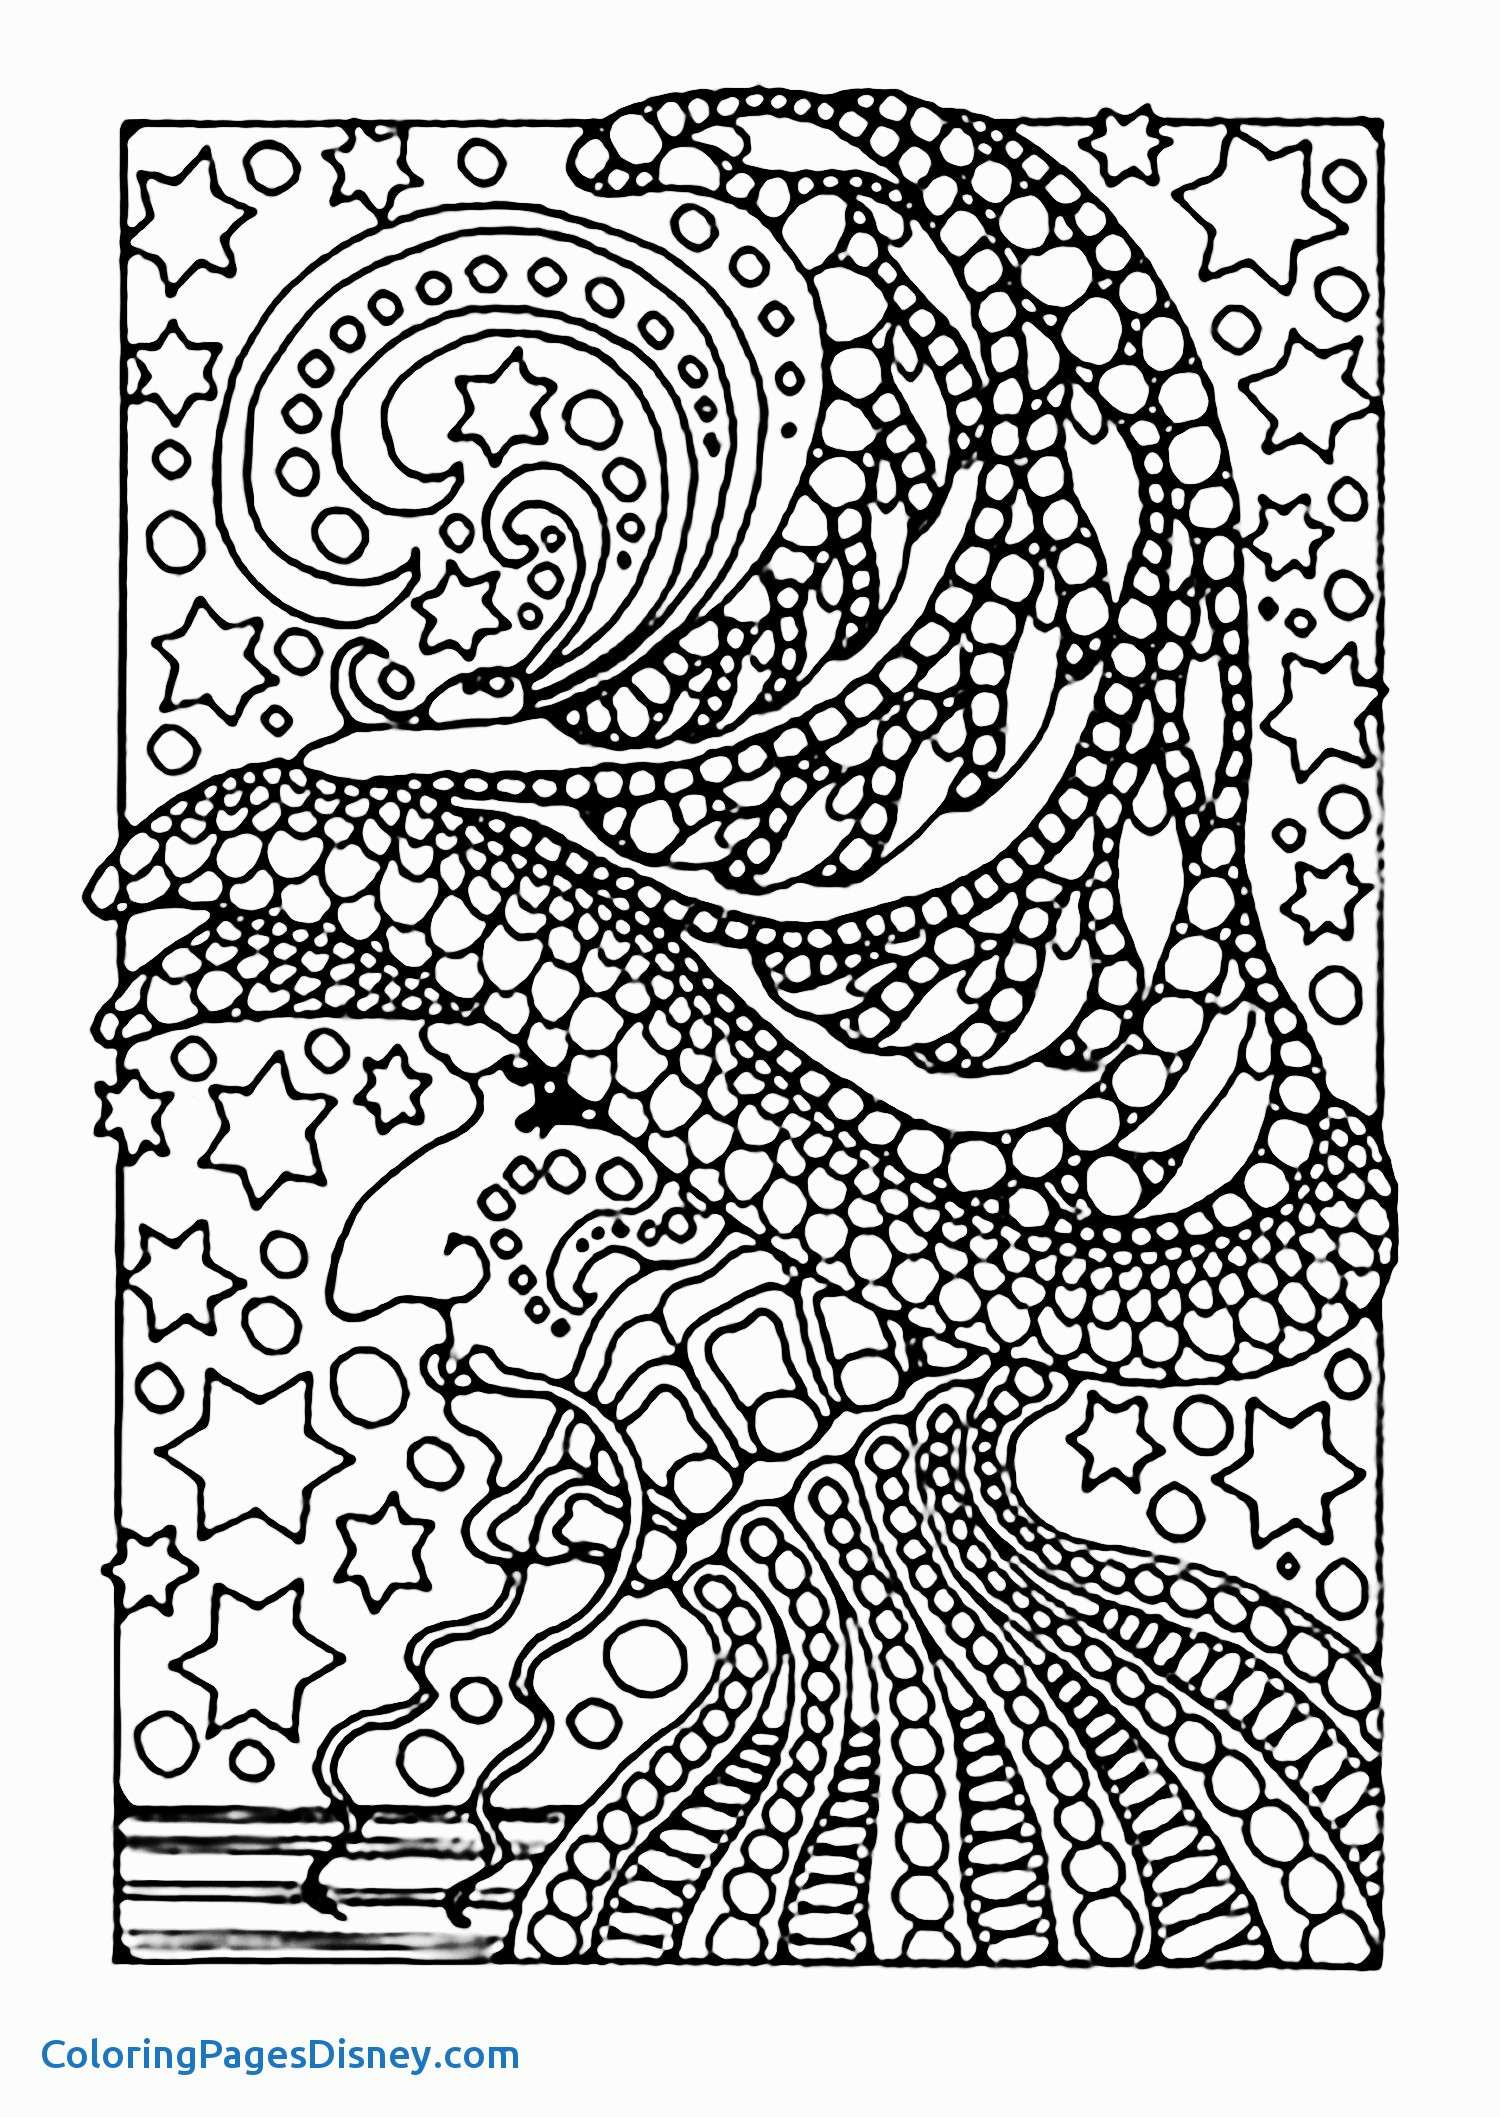 Tangled Coloring Pages  Printable 12g - To print for your project